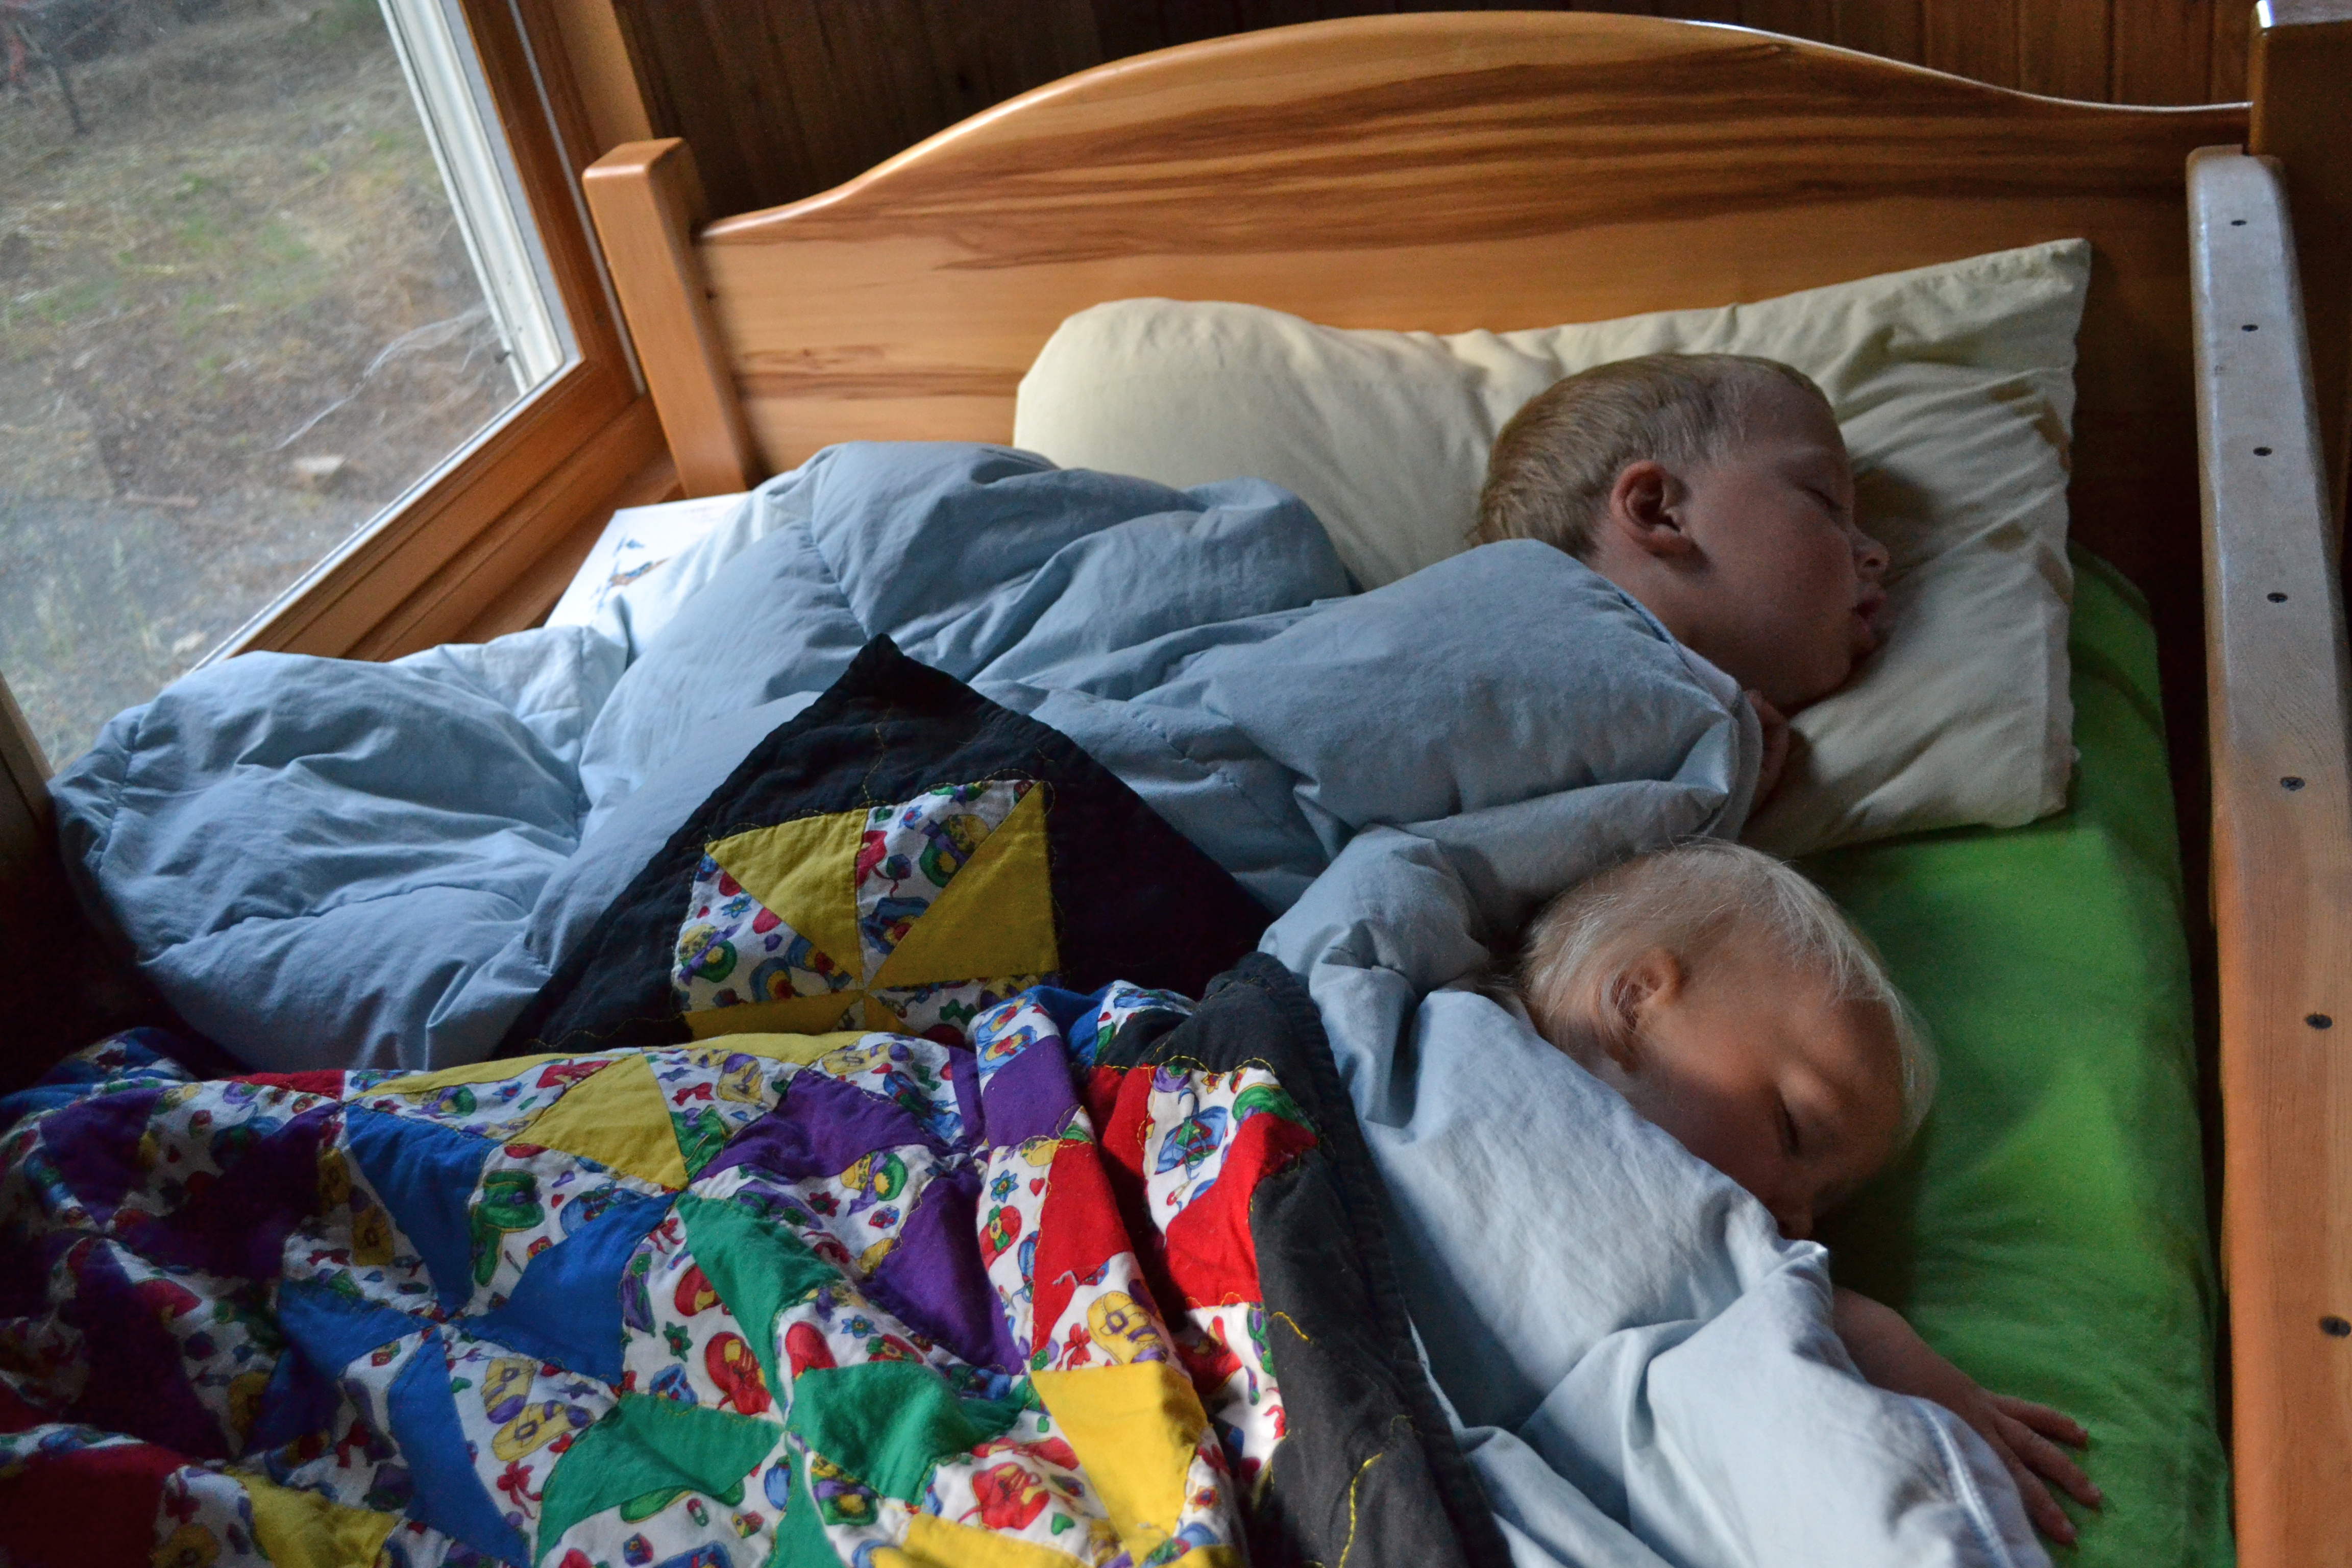 Two Kids in e Bed and a Tour of Cabin Living Quarters